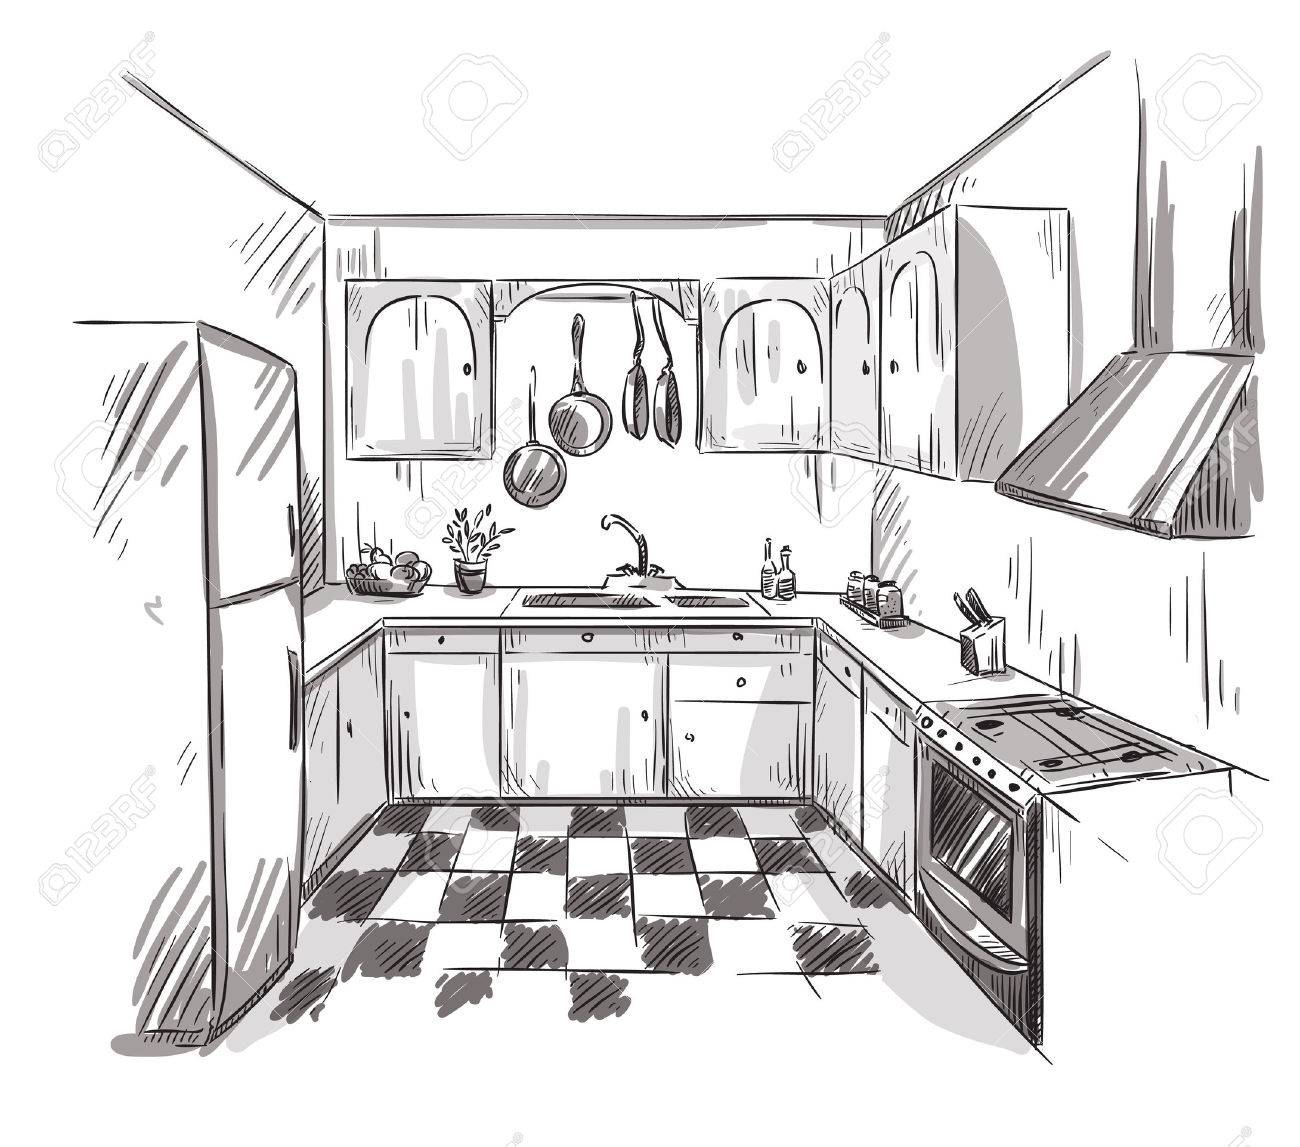 cuisine dessin intrieur illustration vectorielle banque dimages 39232155